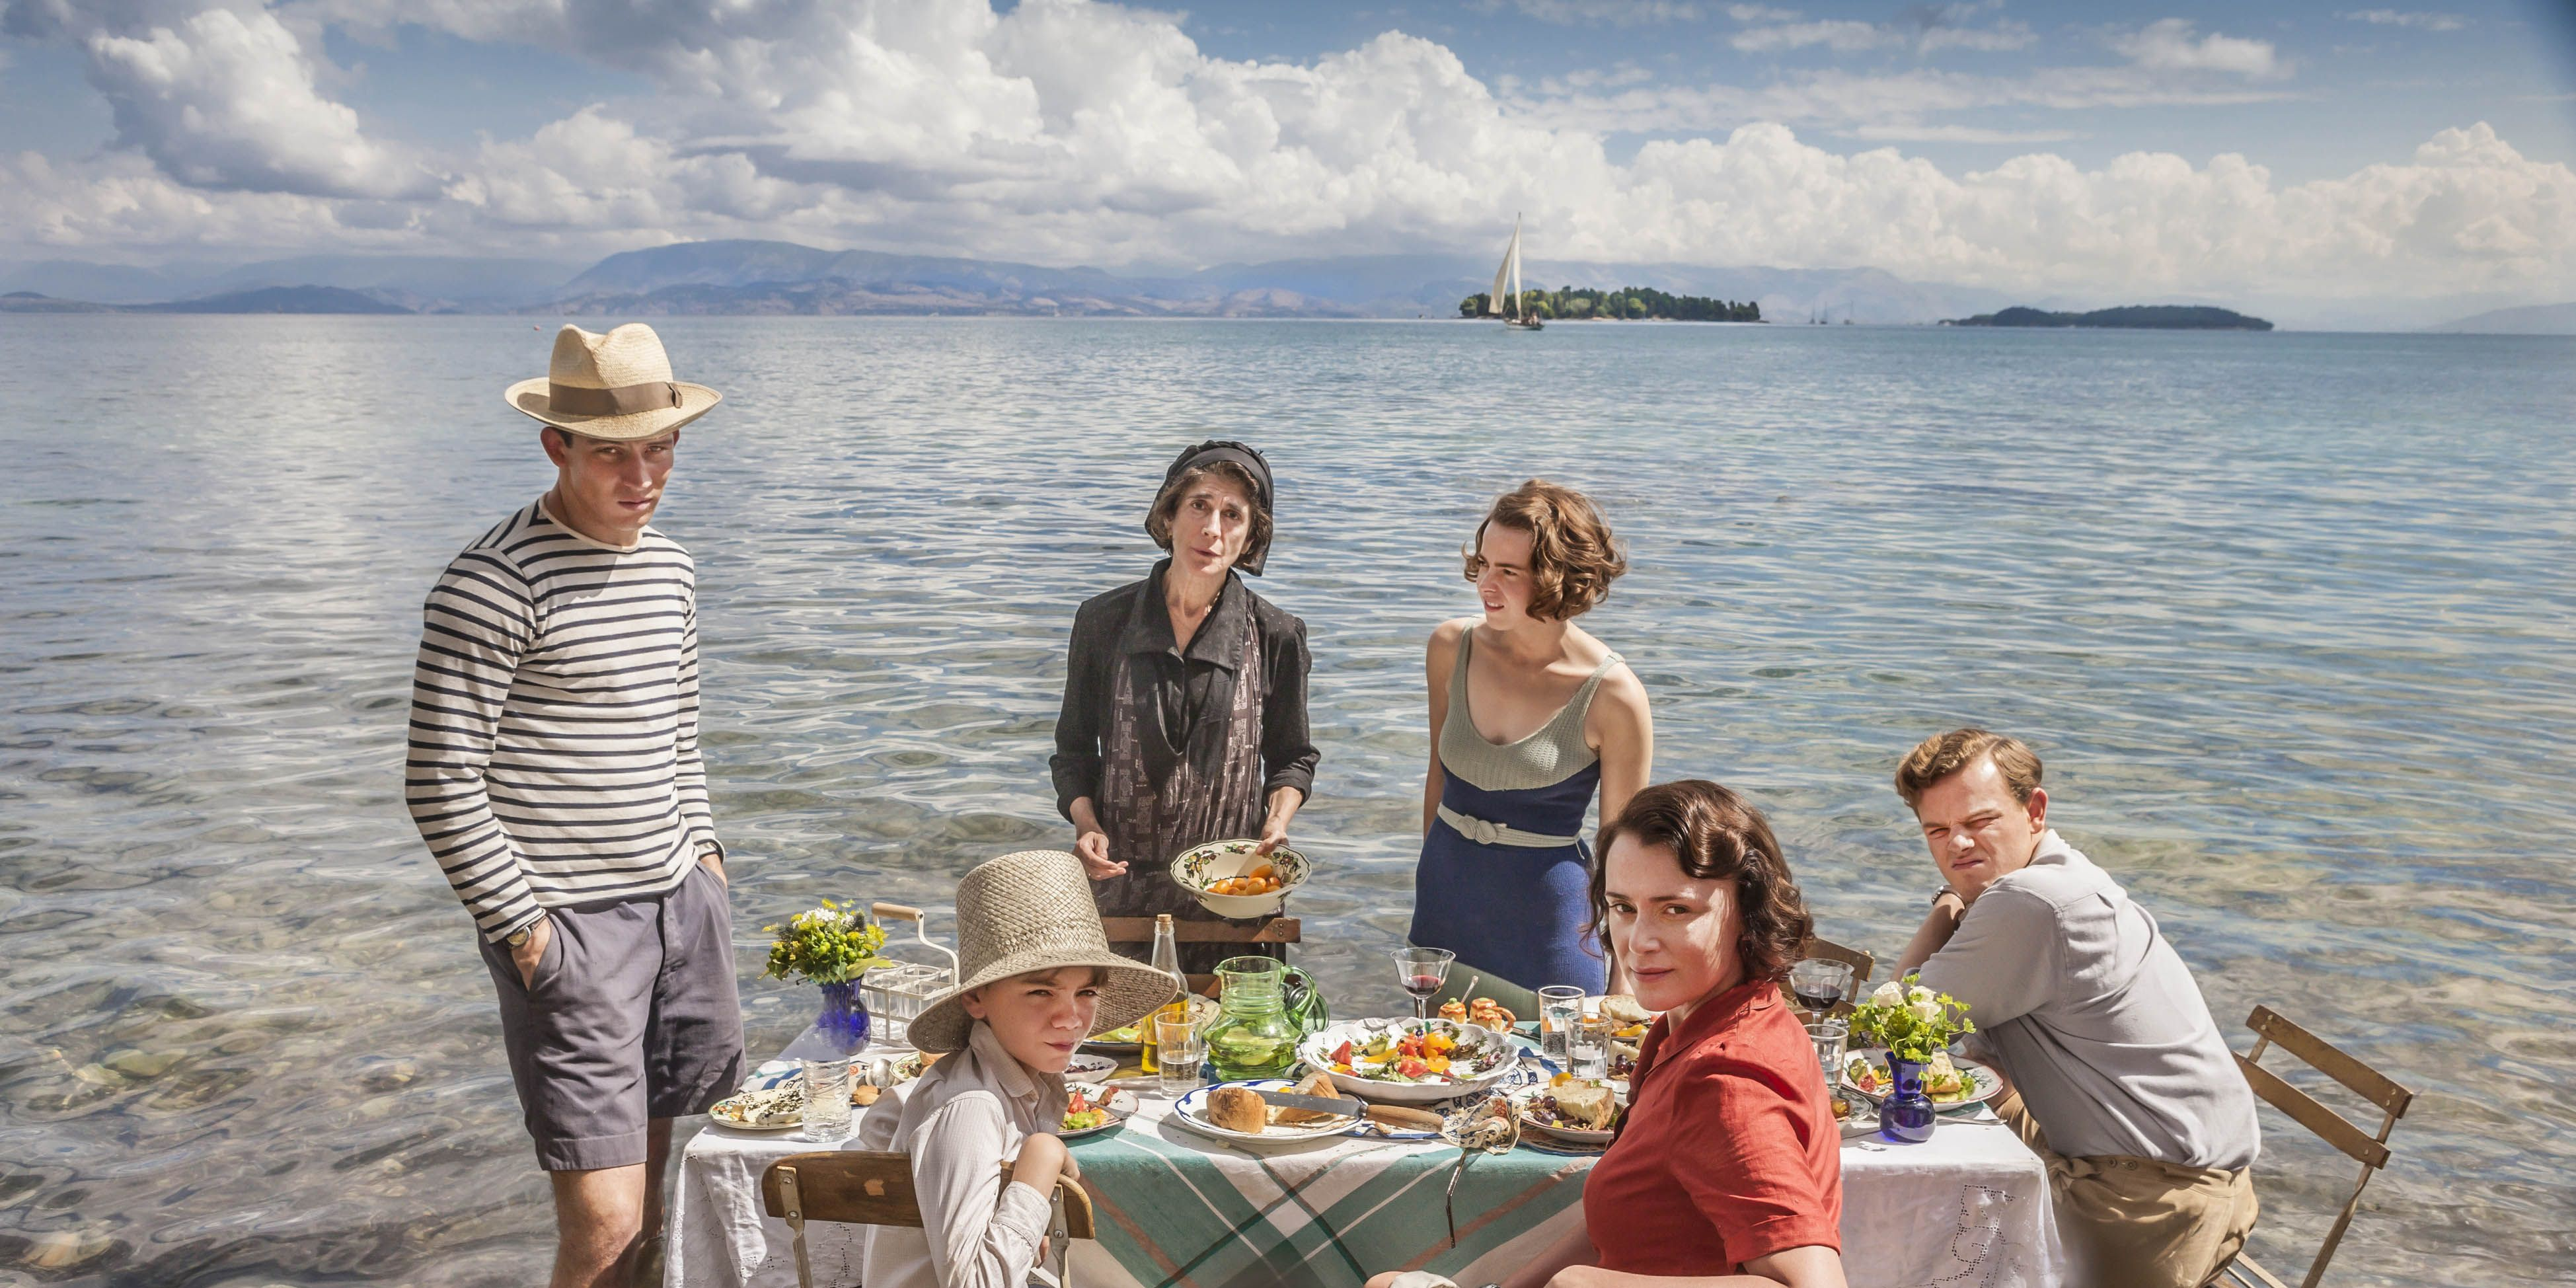 The Durrells: Josh O'Connor as Larry Durrell, Milo Parker as Gerry Durrell, Anna Savva as Lugaretza, Daisy Waterstone as Margo Durrell, Keeley Hawes as Louisa Durrell and Callum Woodhouse as Leslie Durrell